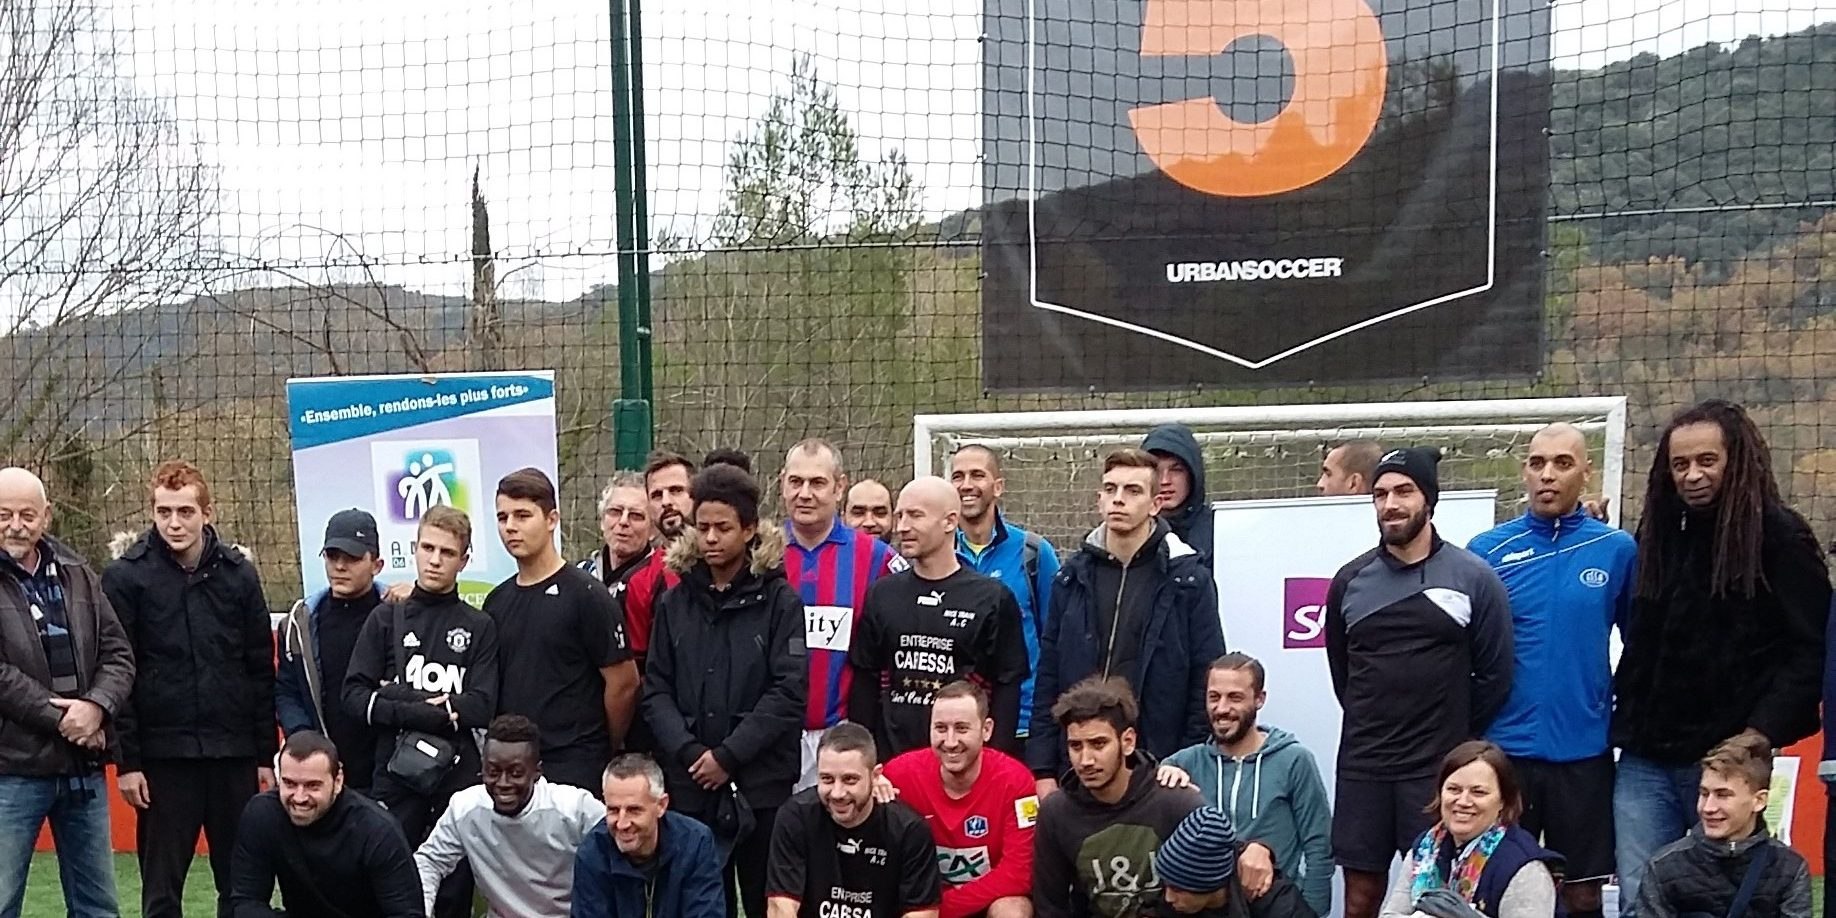 Rencontres sportives sncf